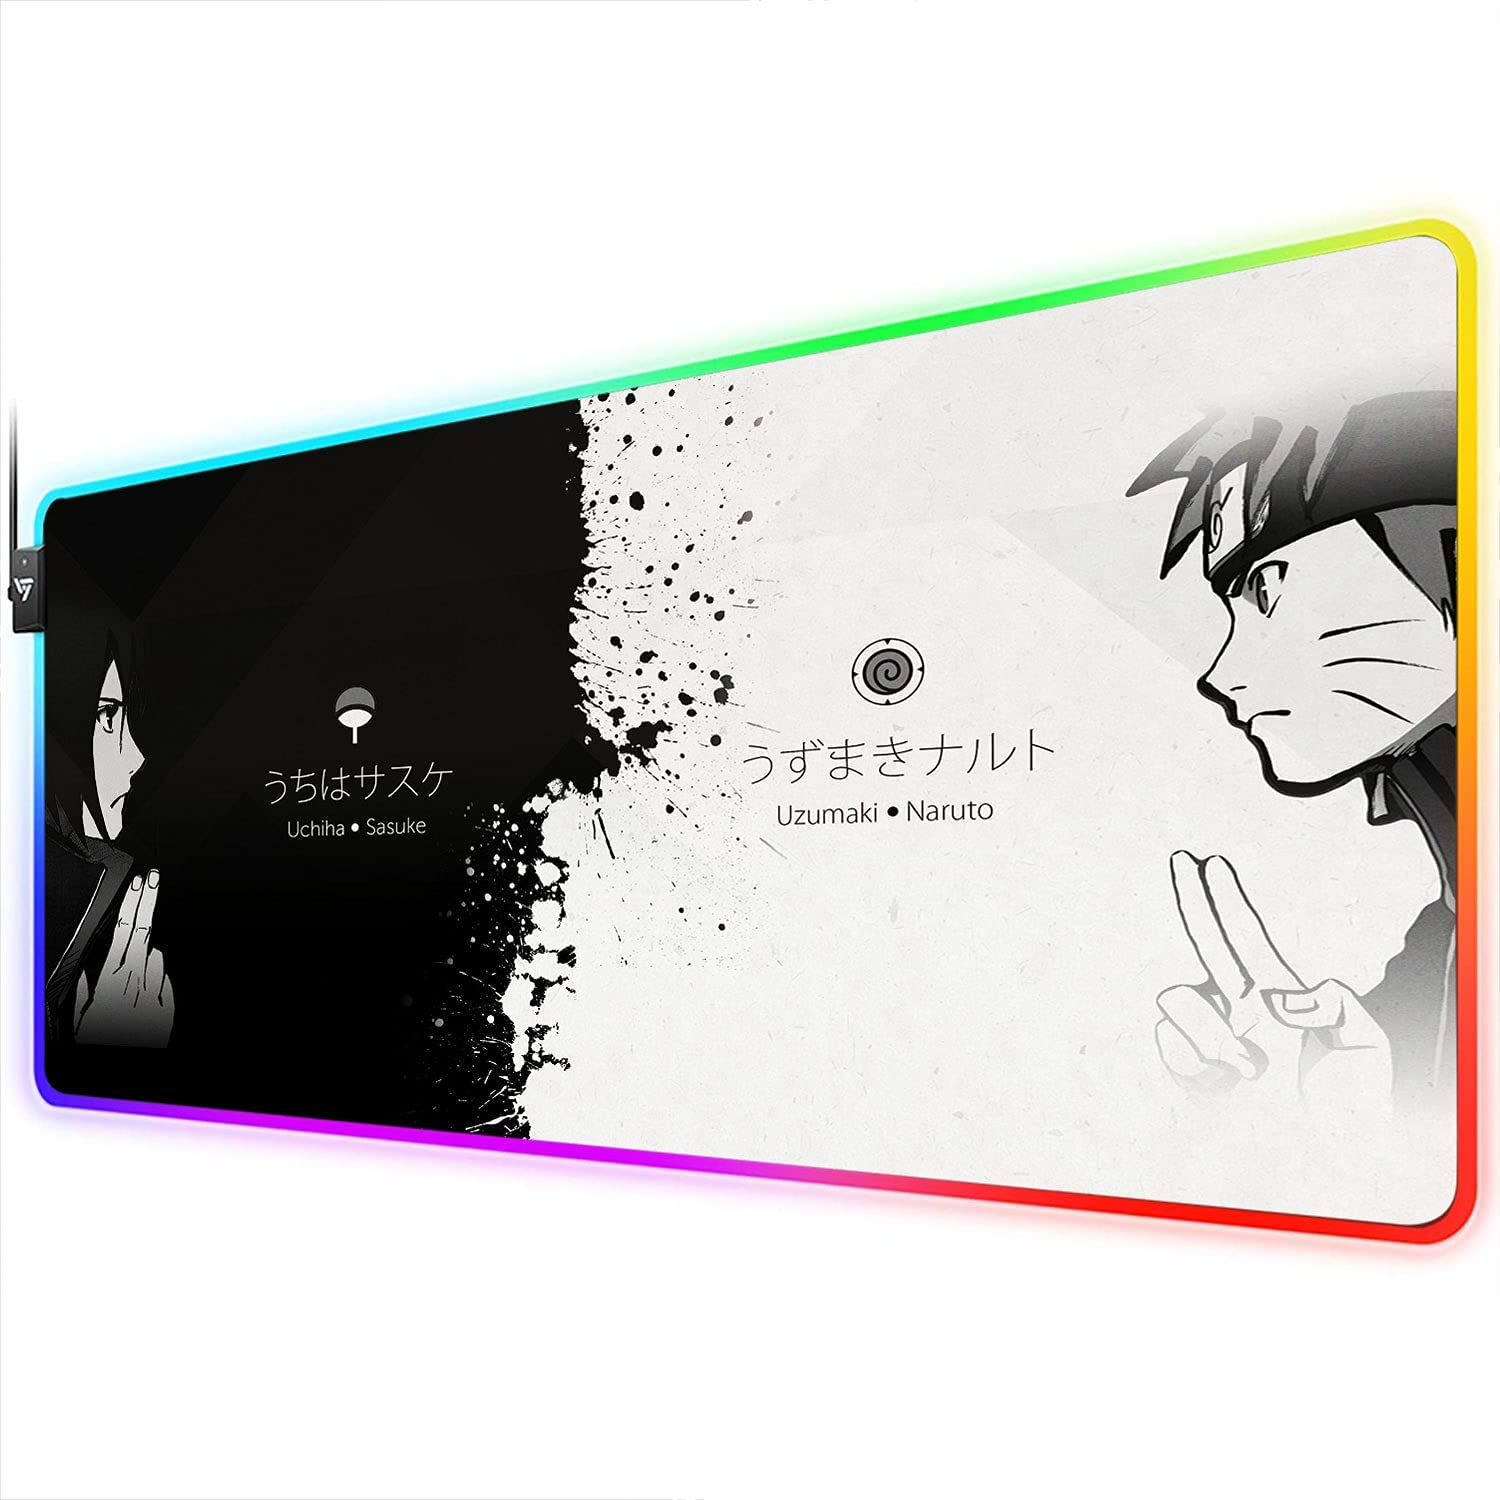 RGB Japanese Anime Mouse Large Department store Pad All items in the store Gaming Itachi